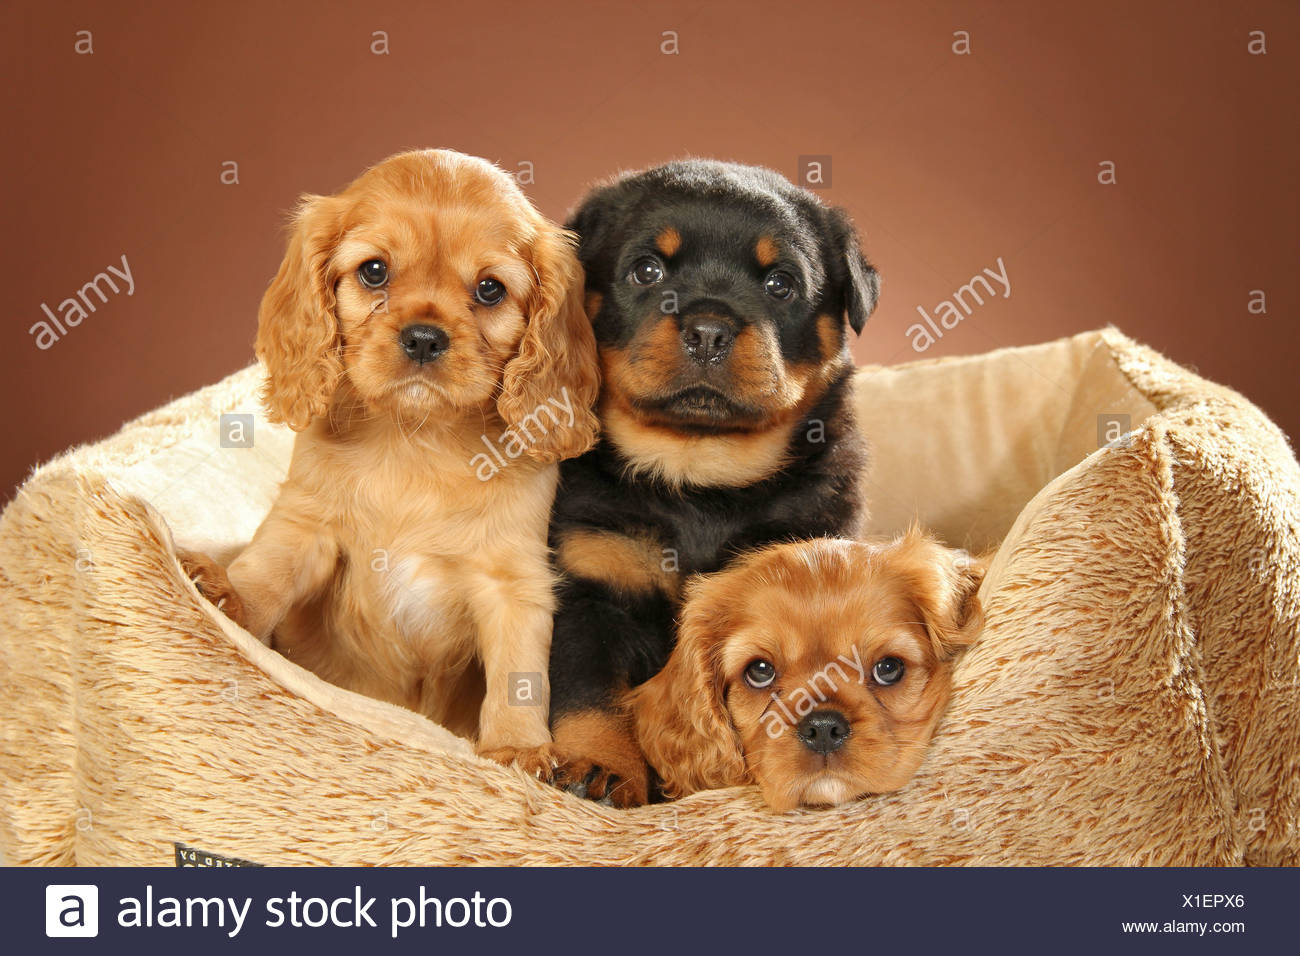 Cavalier King Charles Spaniel Puppies Stock Photos